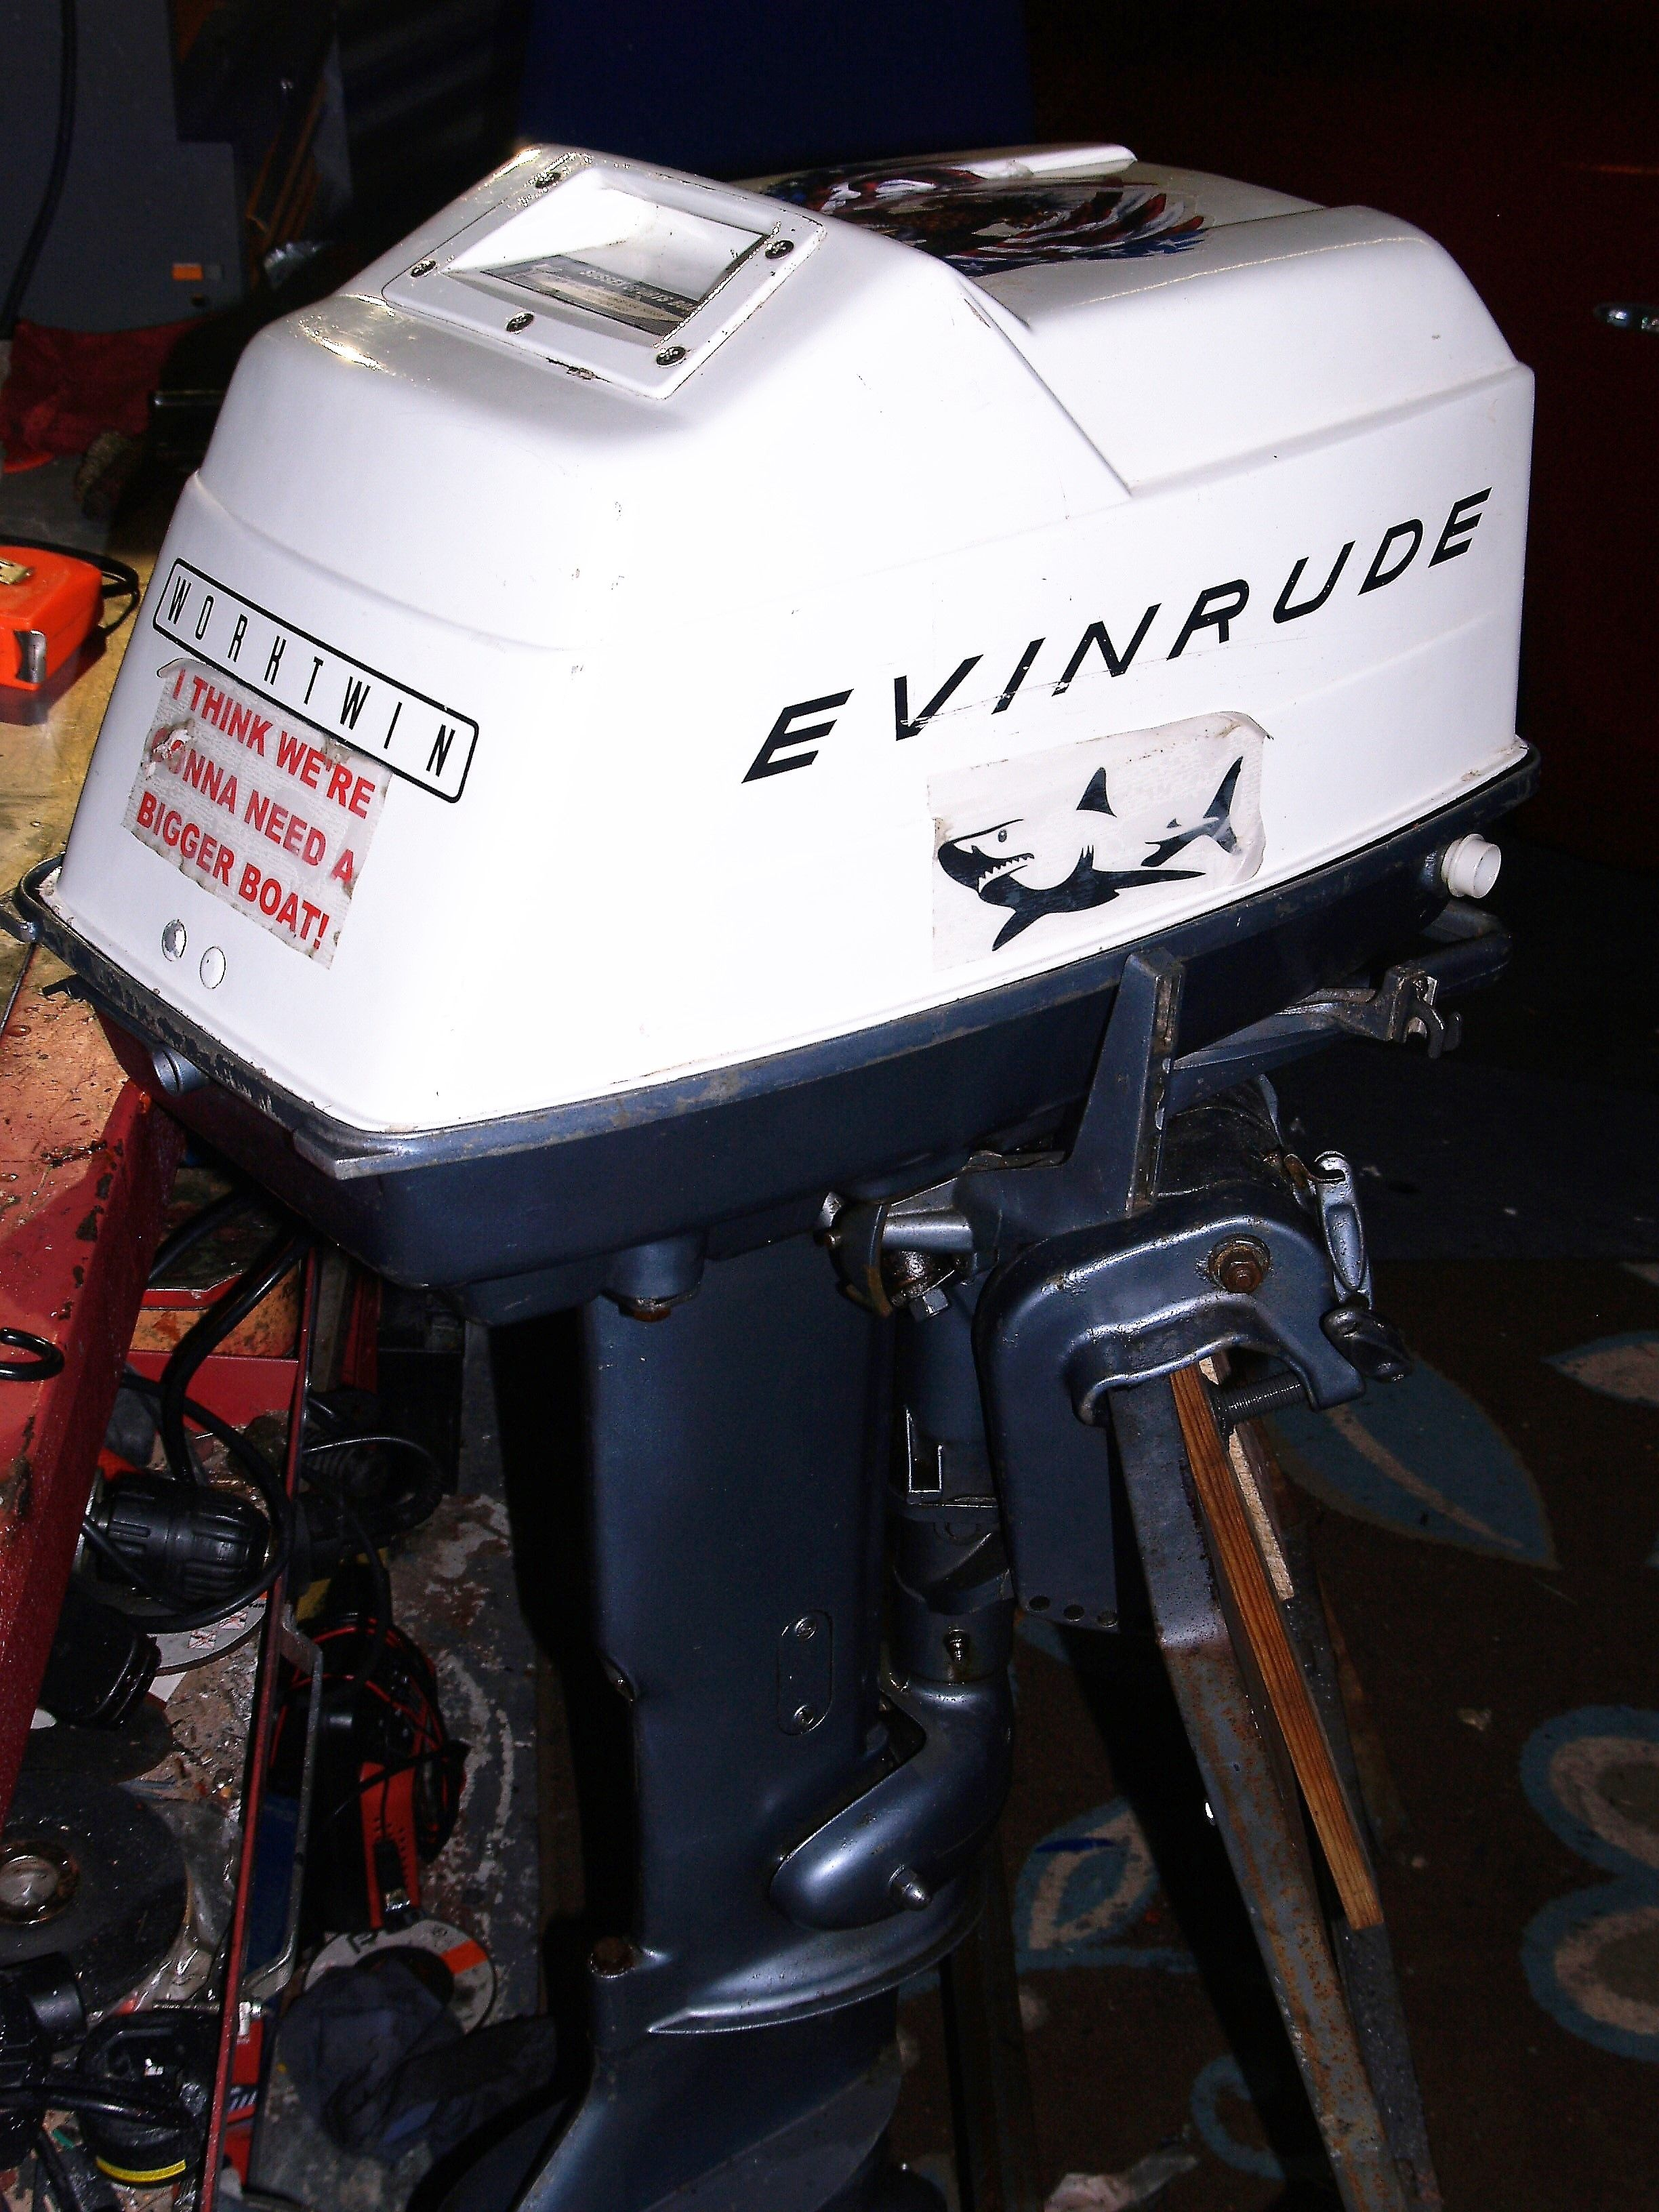 hight resolution of its a 15503c 15hp evinrude worktwin year i don t really know anyone know